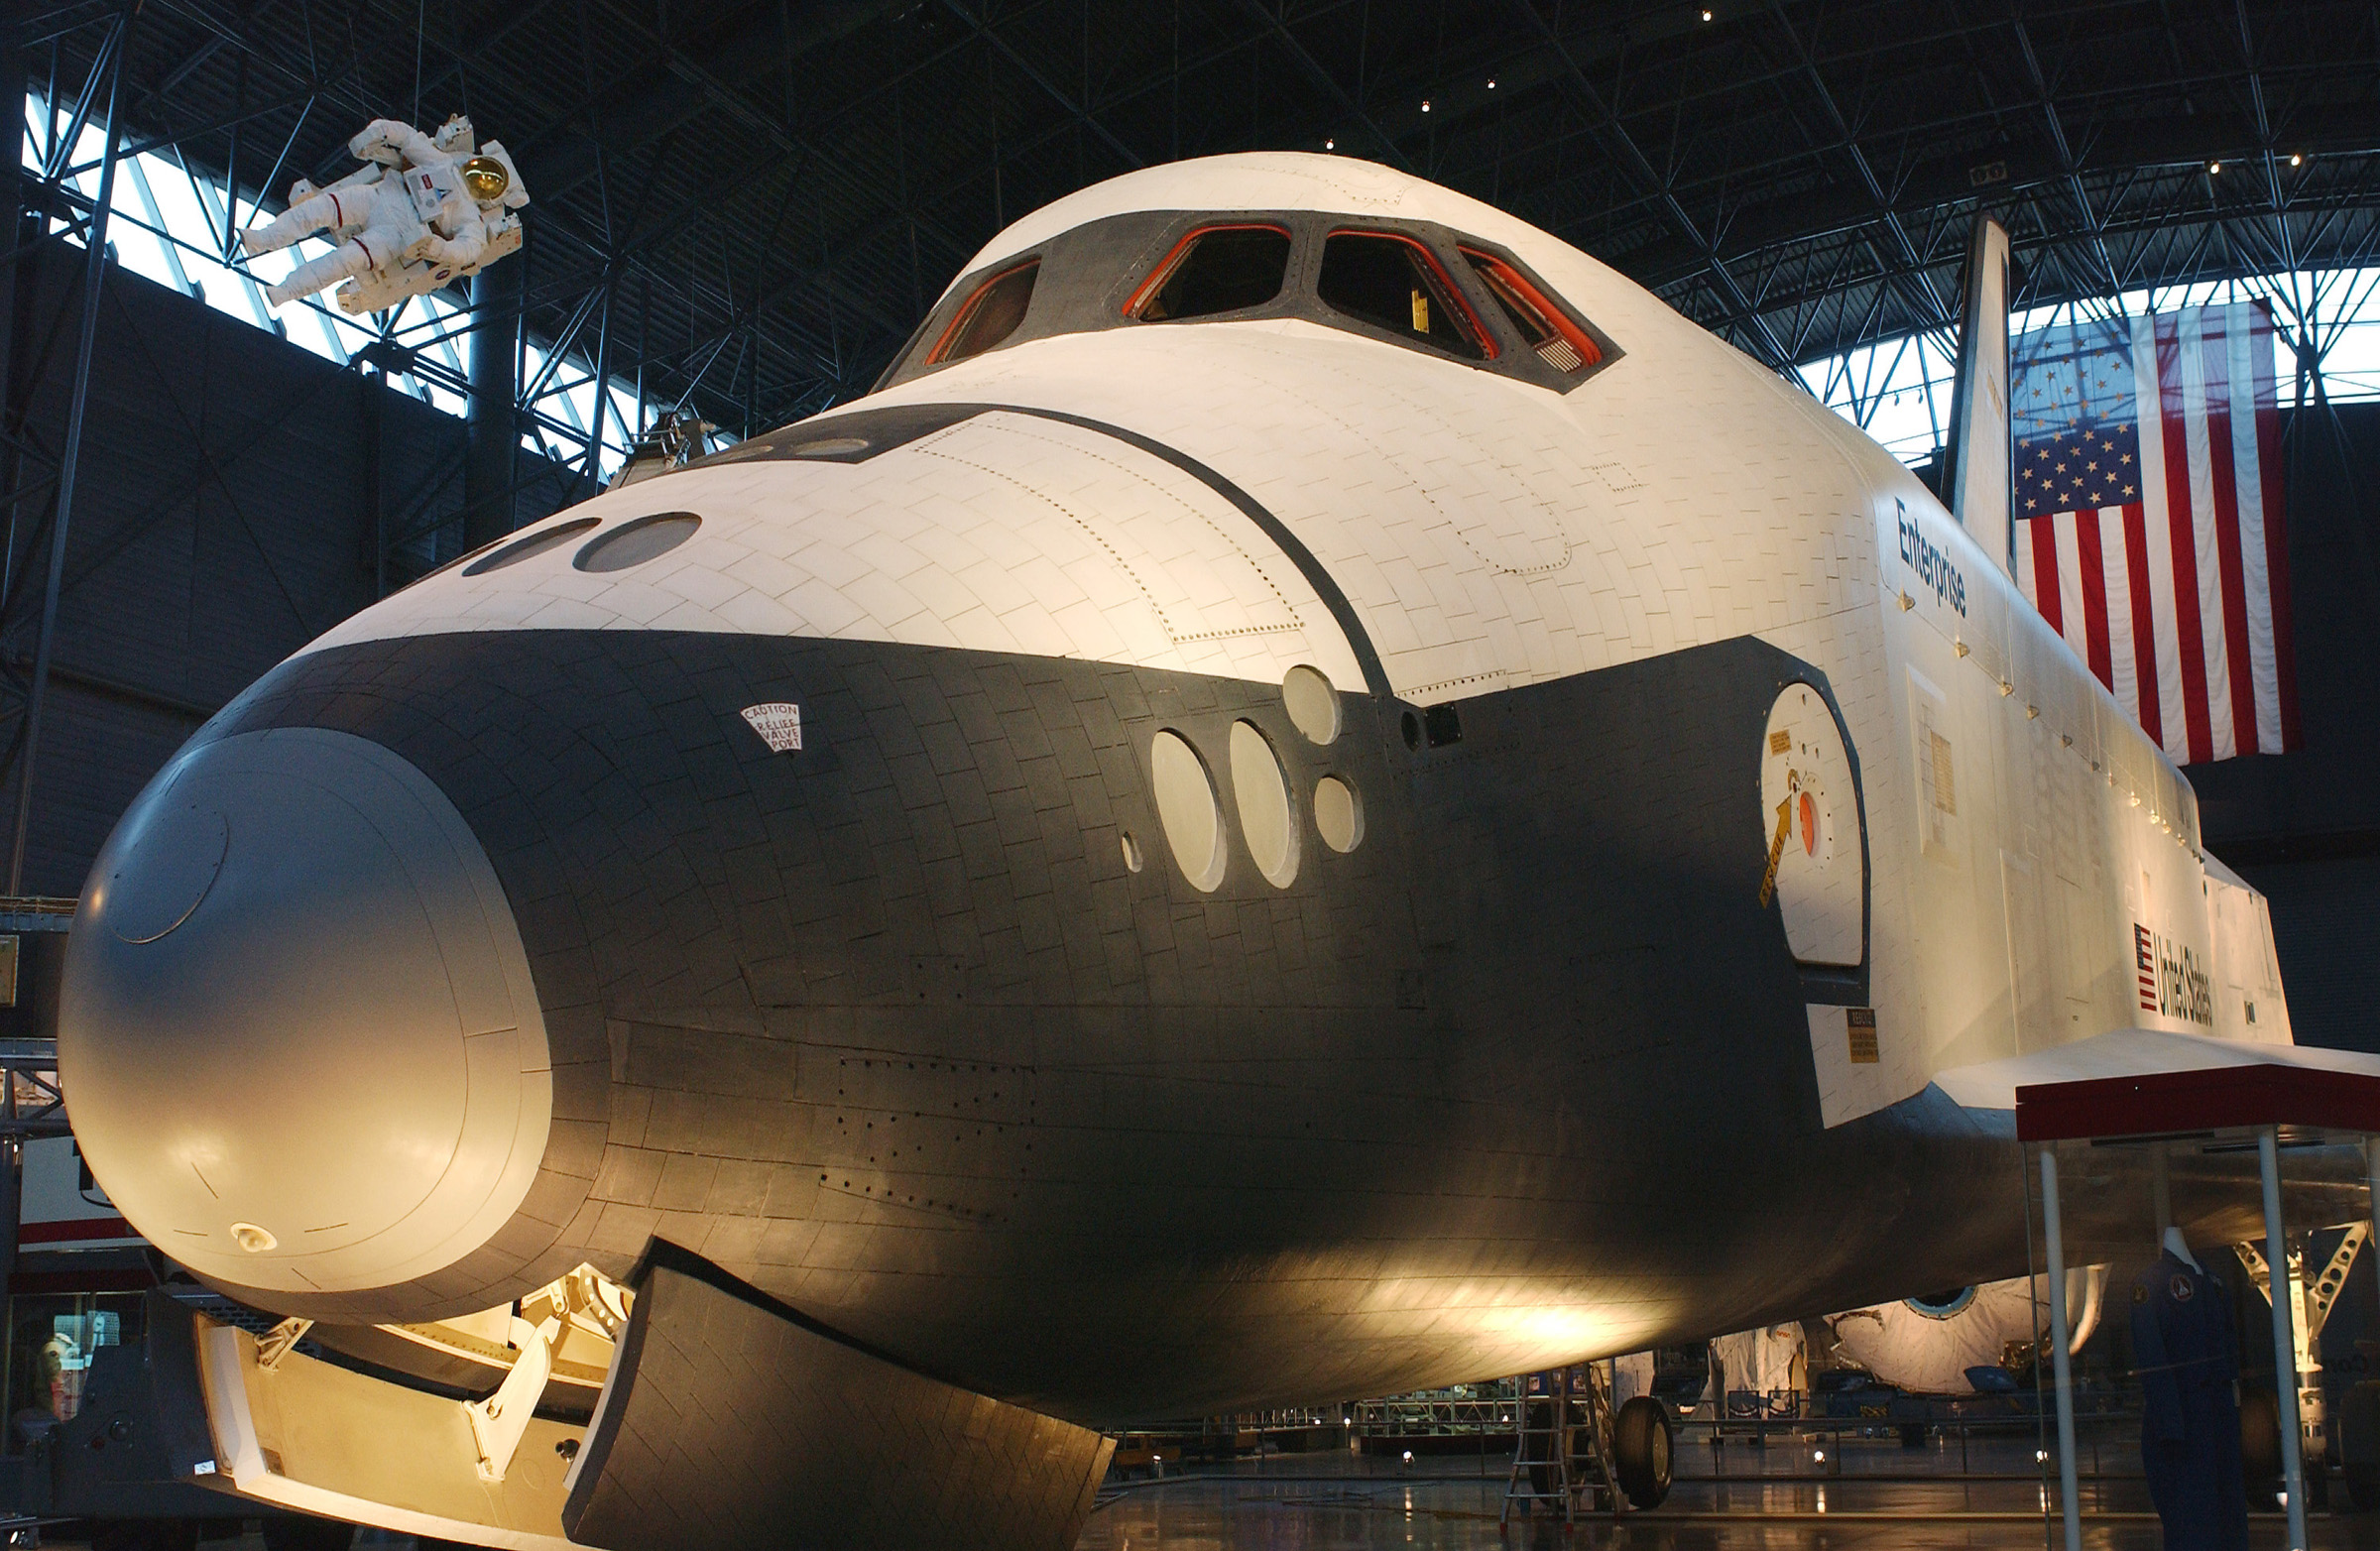 NASA - Shuttle Enterprise at Center of Museum's Space Hangar